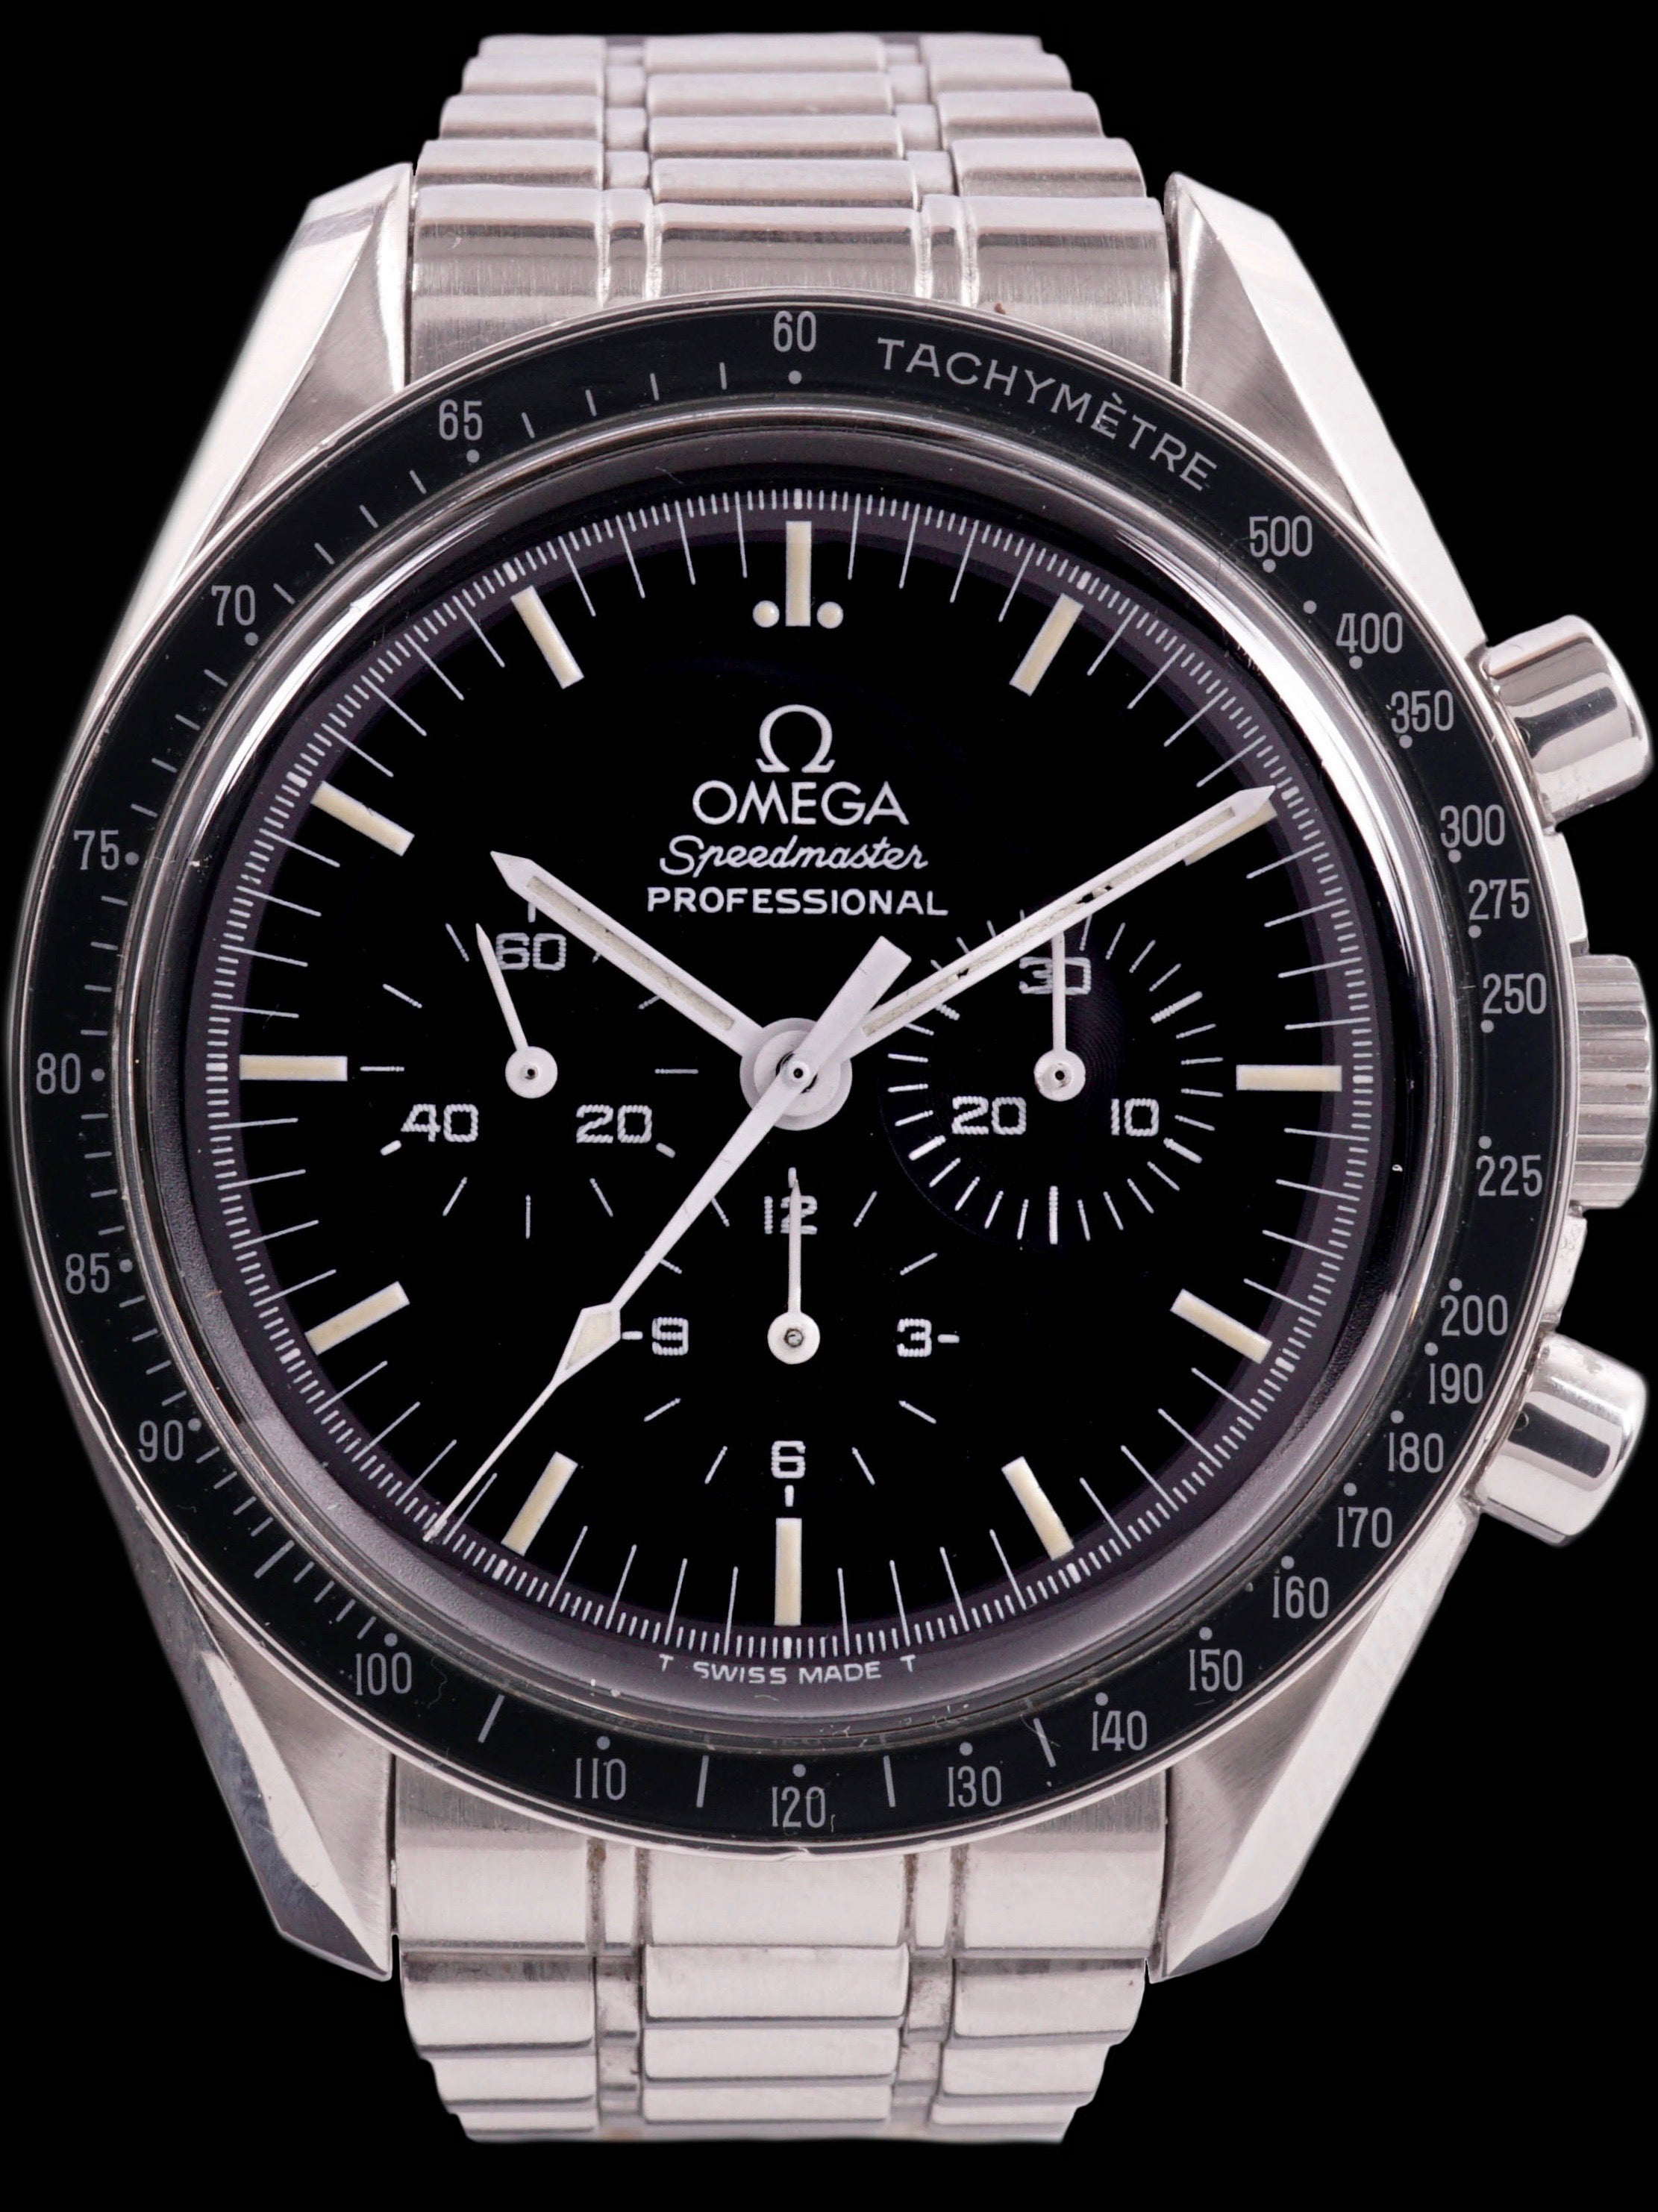 1996 OMEGA Speedmaster Professional (Ref. 3572.50) W/ Box and Hang Tag